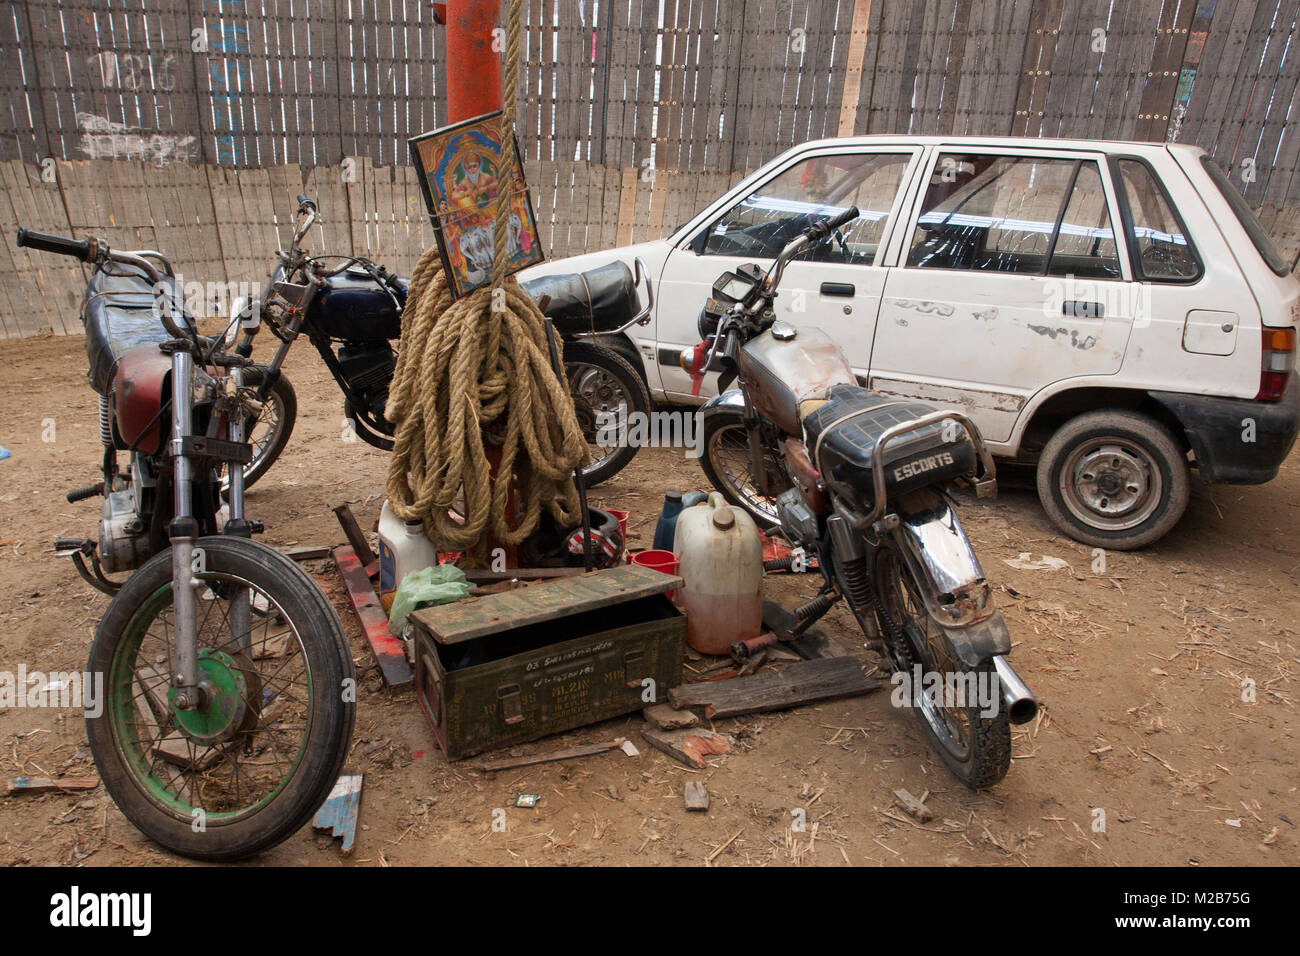 Bikes and a car in a circus arena called death of bowl in Nepal. - Stock Image